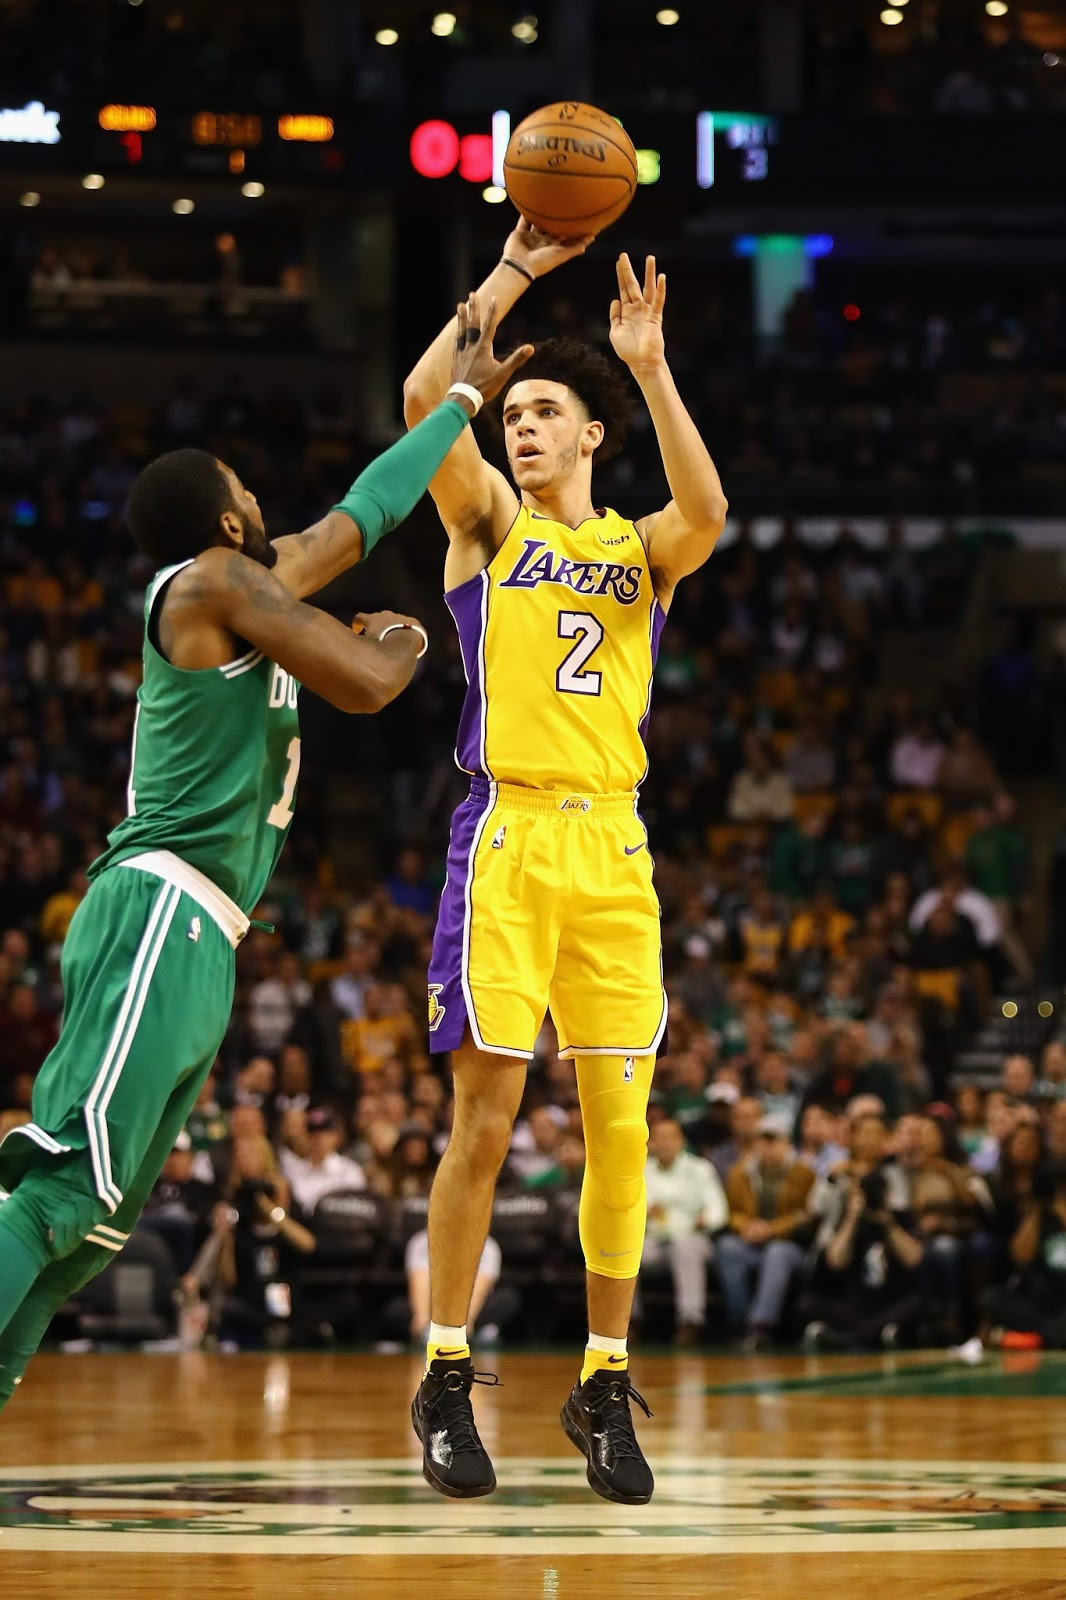 Lonzo Ball Wallpaper 90 images in Collection Page 1 1066x1600